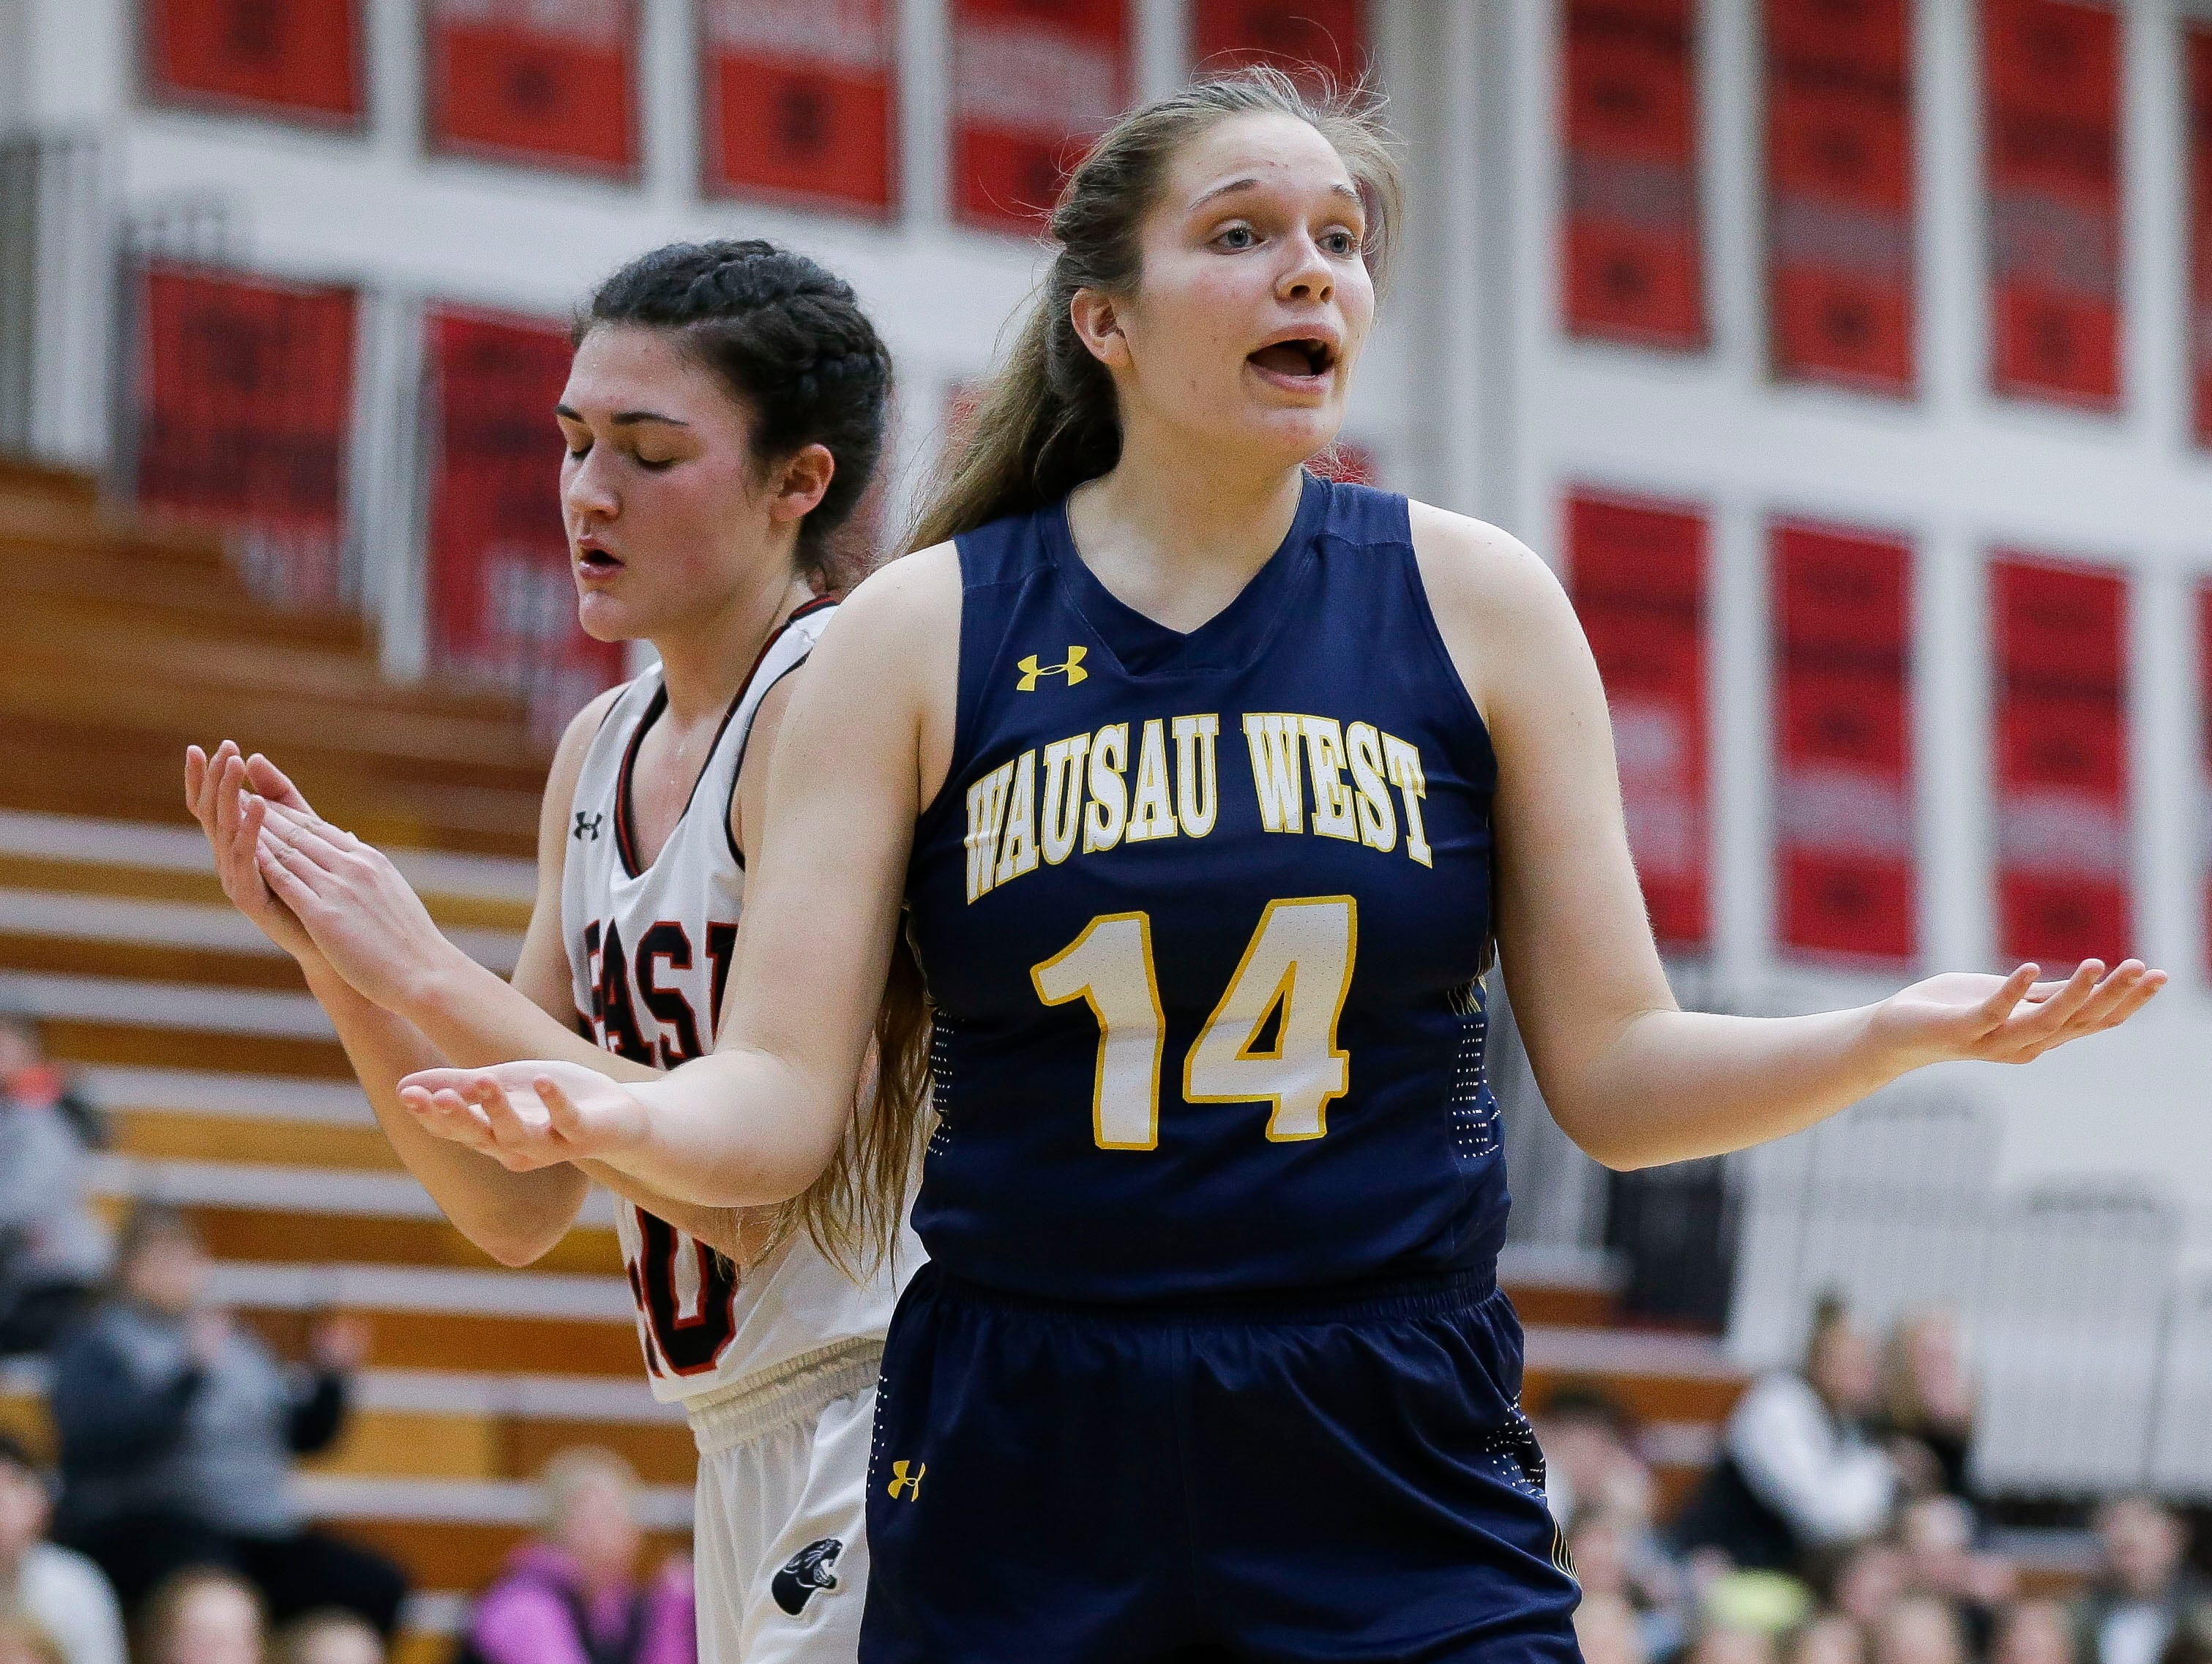 Wausau West's Anna Cunningham (14) reacts after being called for a foul against SPASH on Thursday, February 14, 2019, at SPASH in Stevens Point, Wis.Tork Mason/USA TODAY NETWORK-Wisconsin